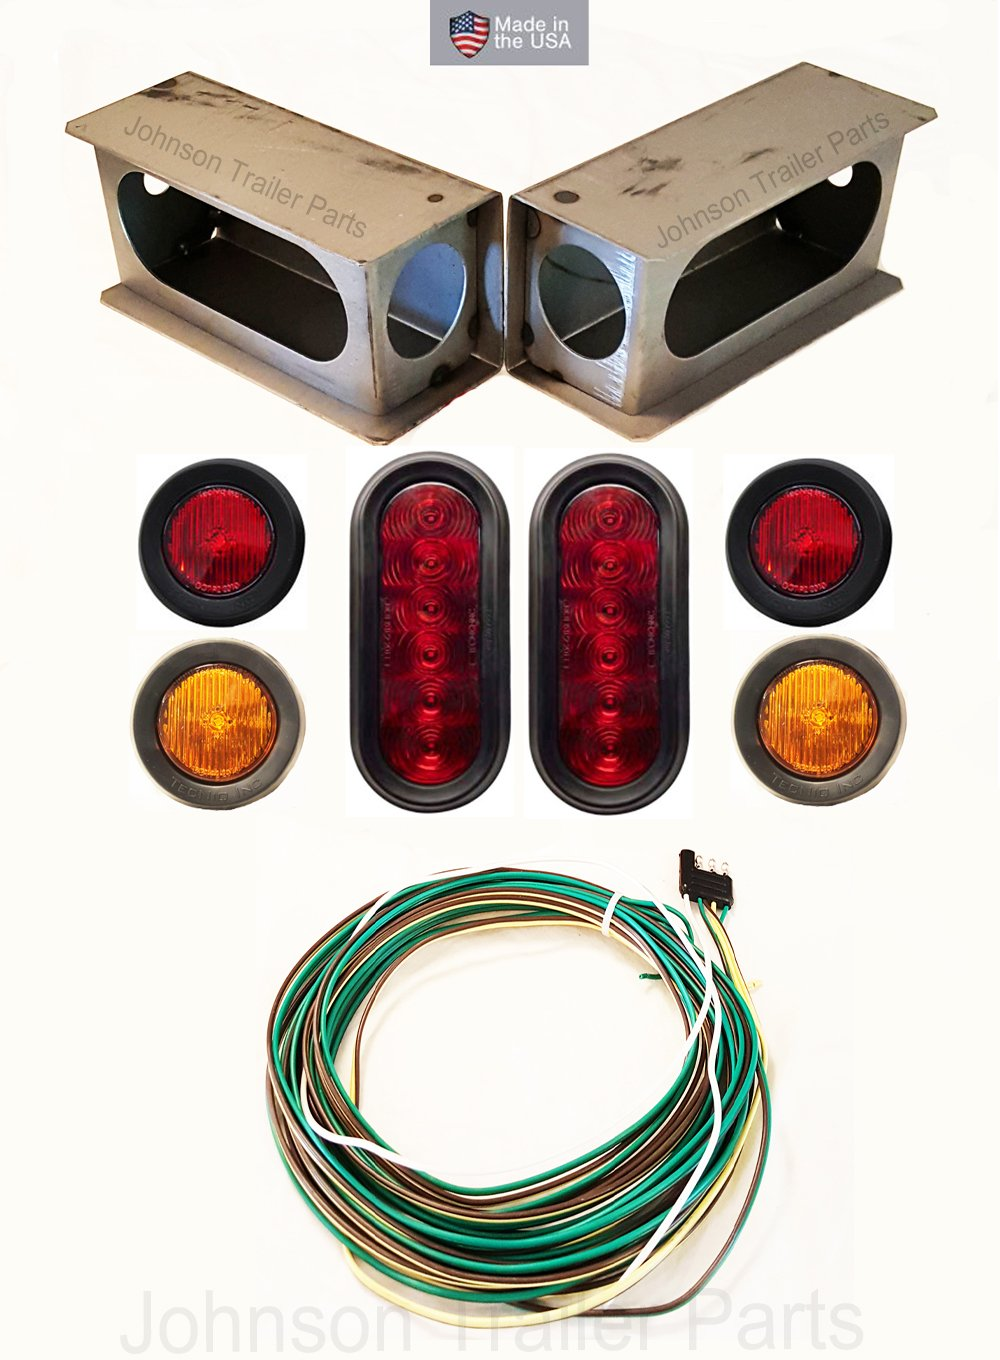 "Amazon.com: LED Light Kit For Trailers Trucks RVs w/Enclosed Steel Box, Wiring  Harness, Sidemarker/Clearance Lights - Stop Turn Tail Lights (Under 80"" ..."